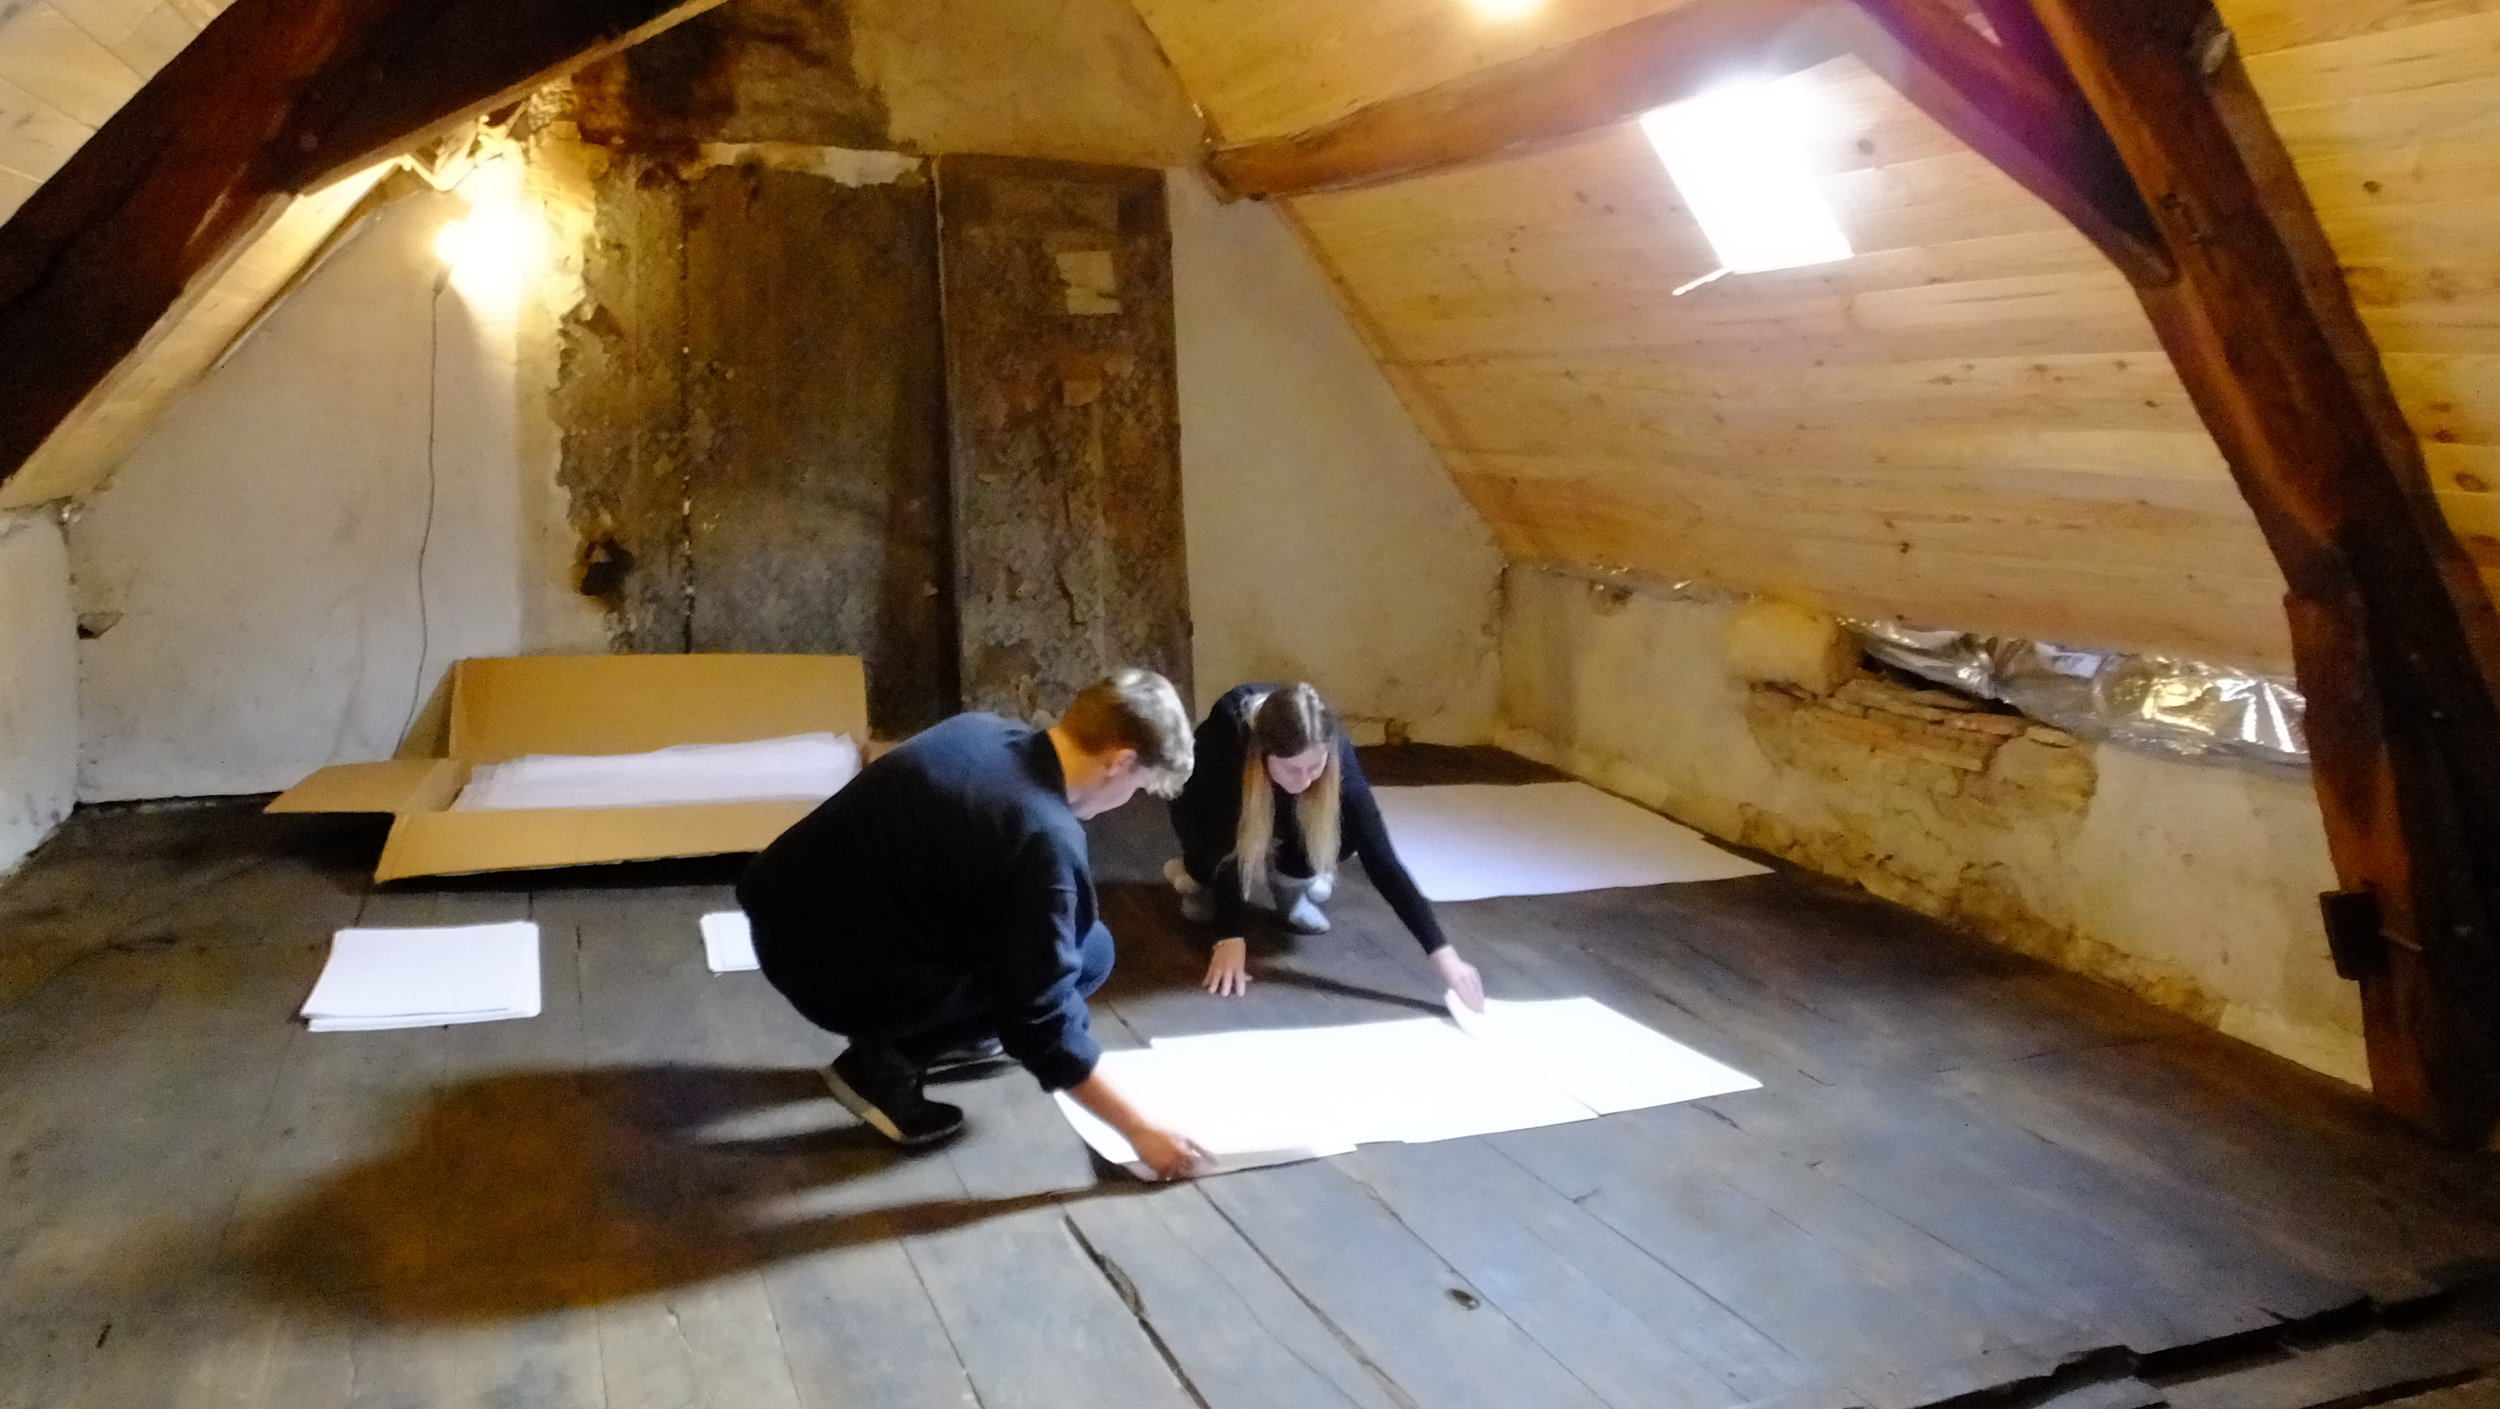 Dr. Charlotte Newman (English Heritage) & Morgan Annett-Parish (Atelier de Melusine) working in the Grenier space